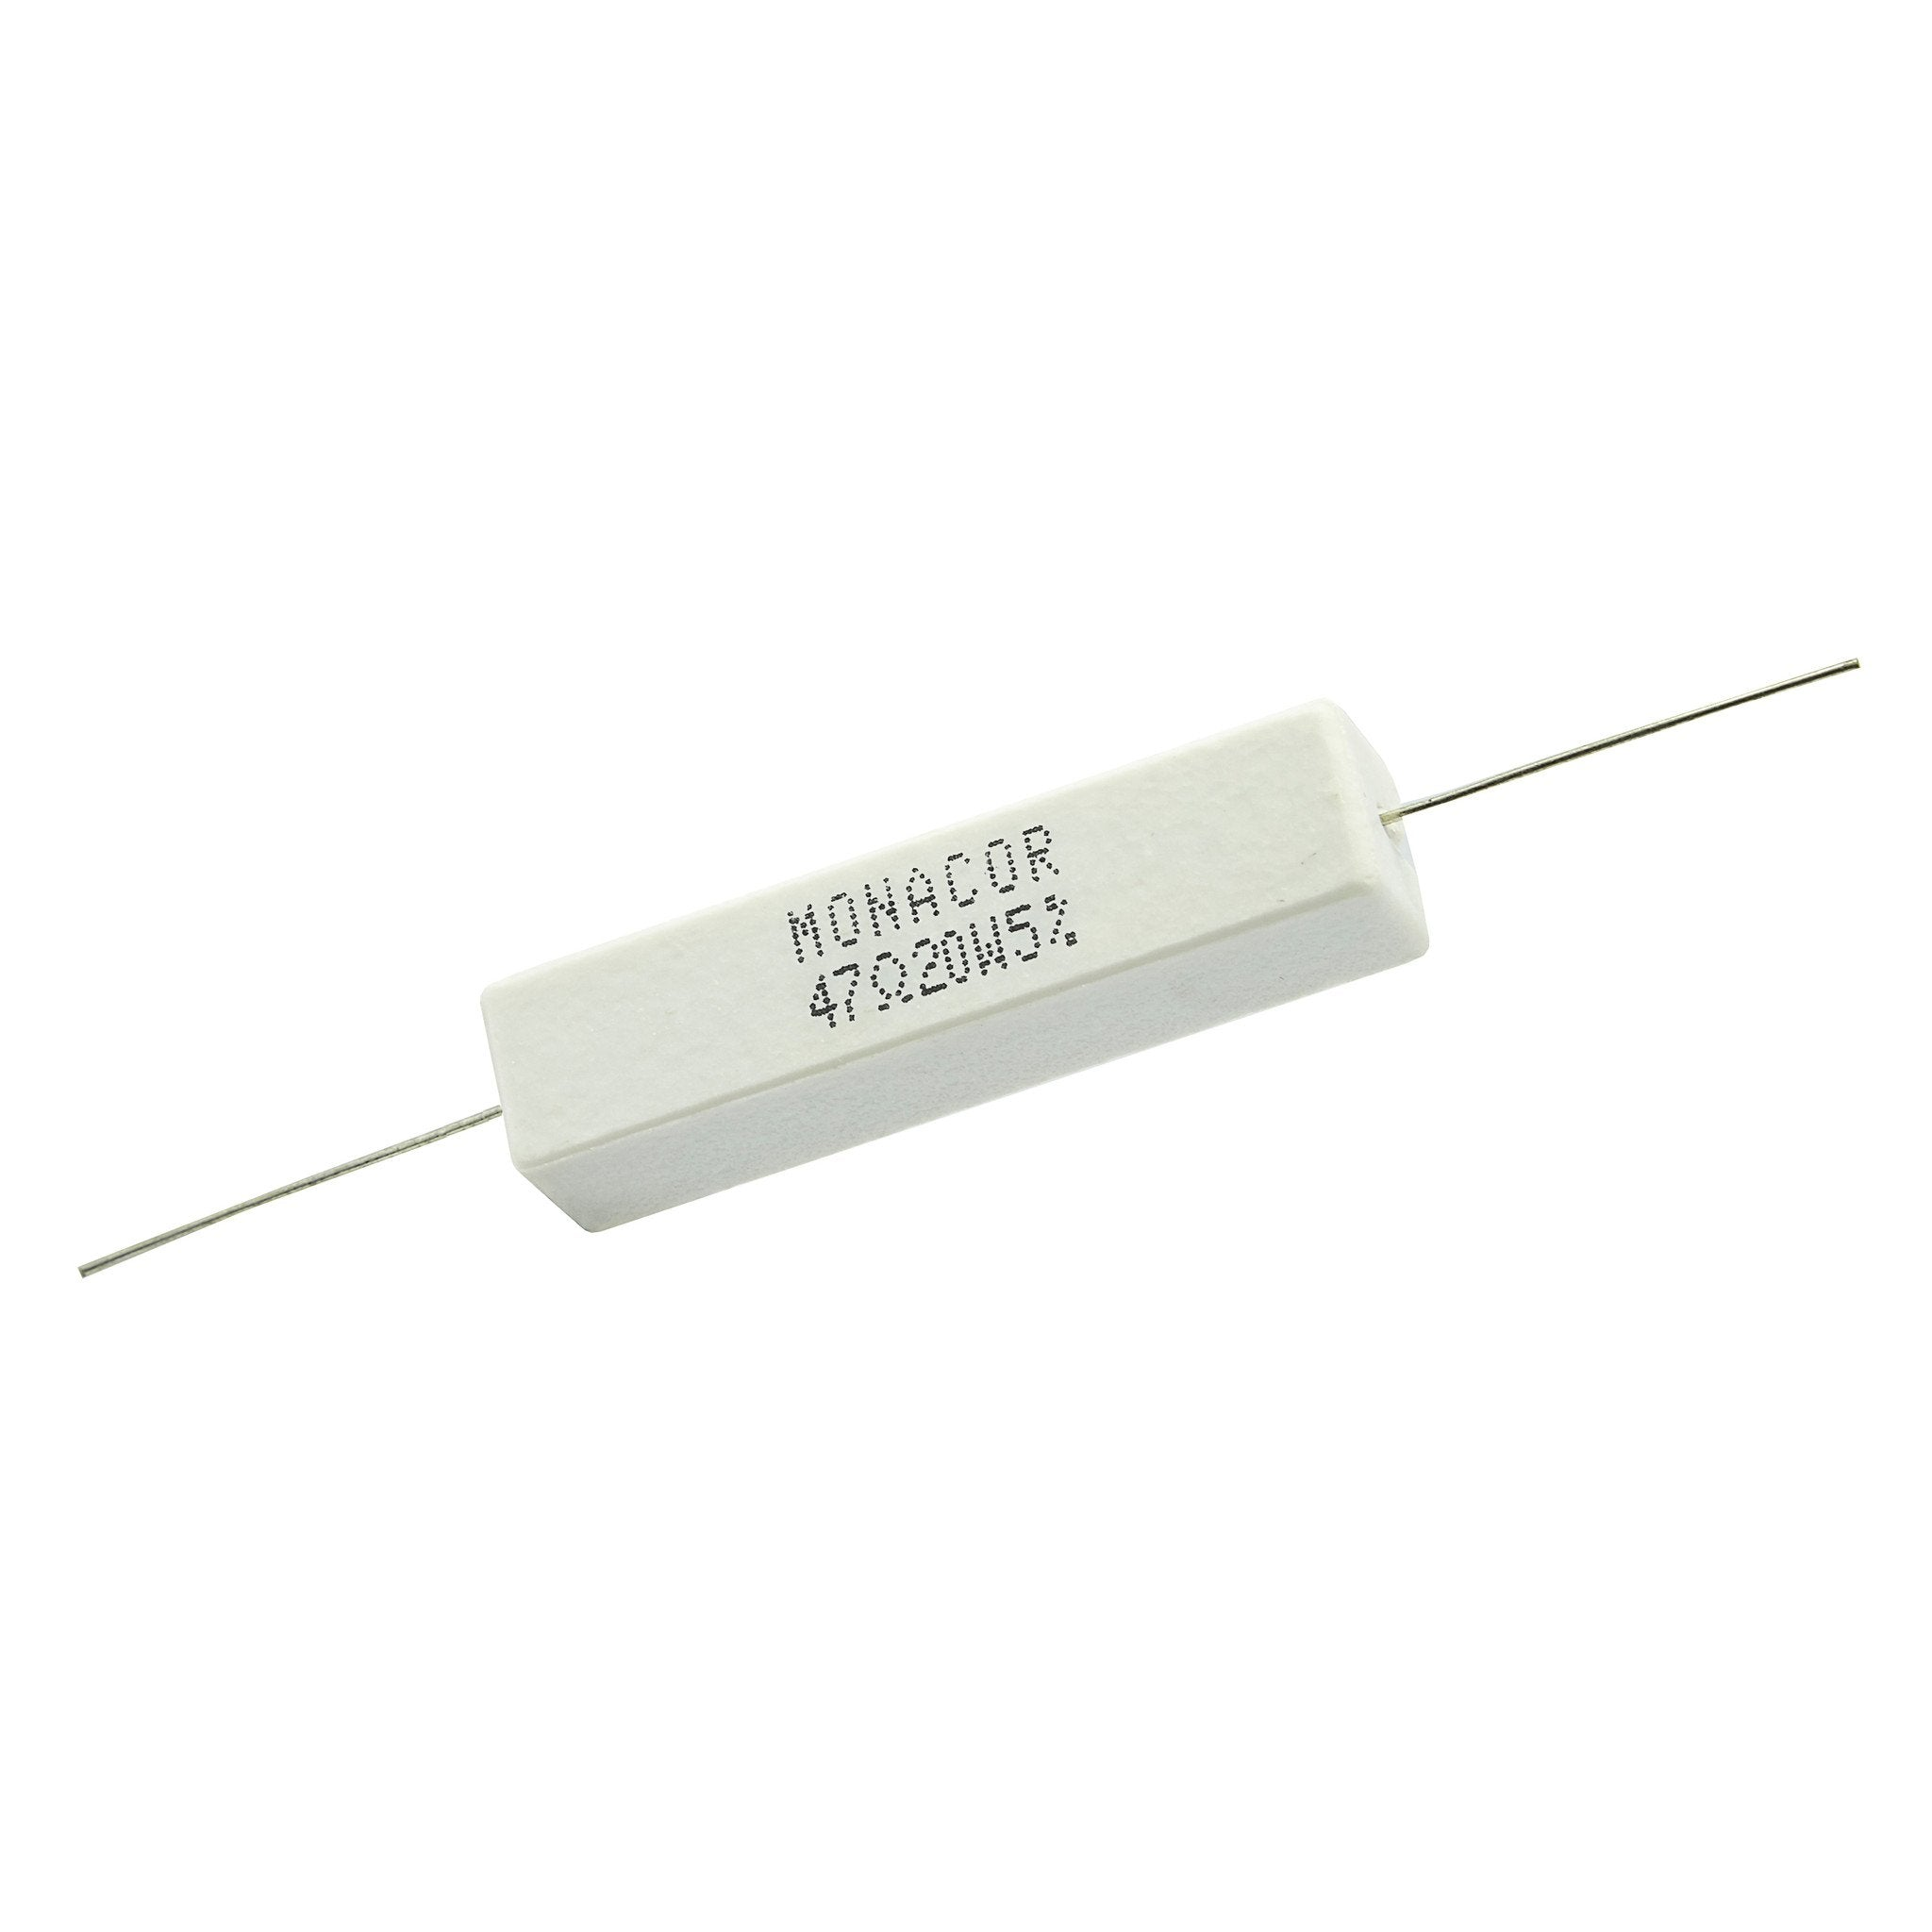 47 Ohm 20 Watt 5% Ceramic Wirewound Resistor - Willys-Hifi Ltd